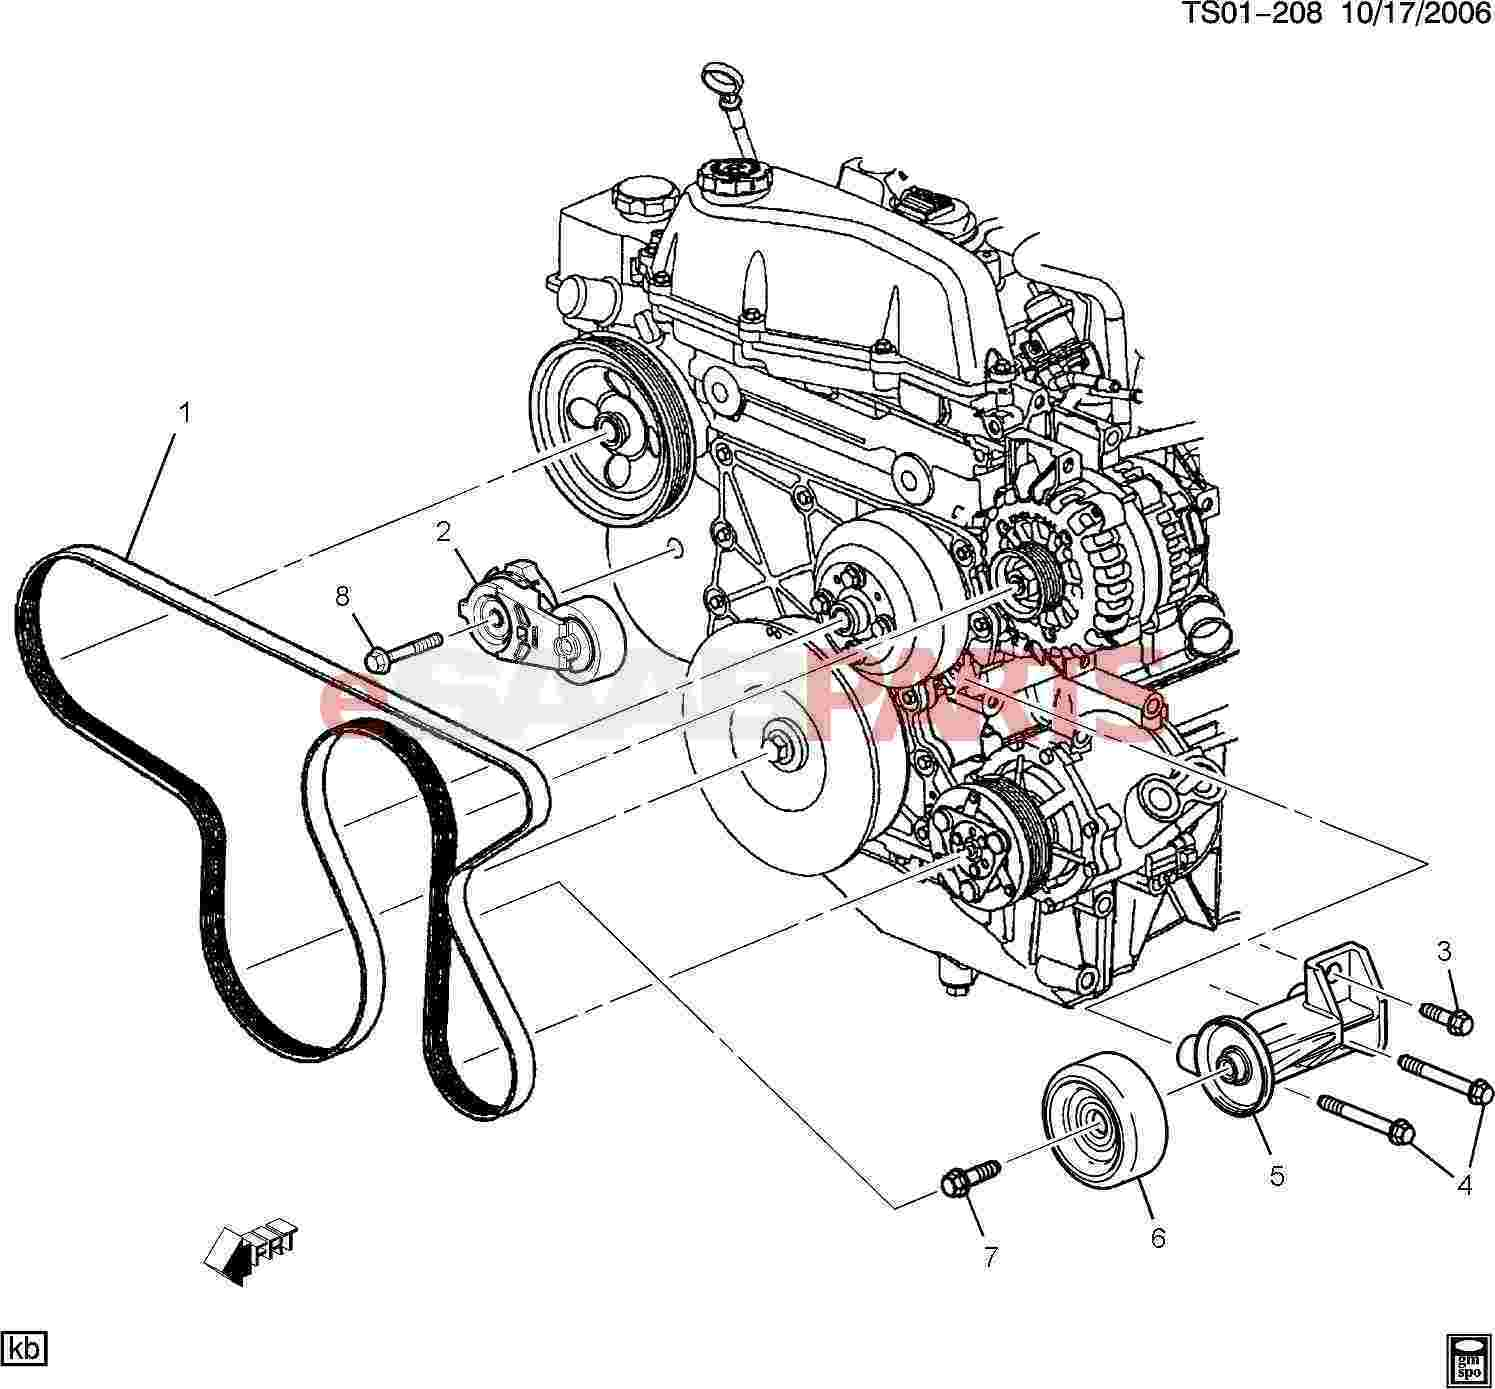 hight resolution of nissan pathfinder engine diagram likewise 2000 chevy impala 3 4 2005 nissan pathfinder engine diagram moreover 2001 nissan pathfinder